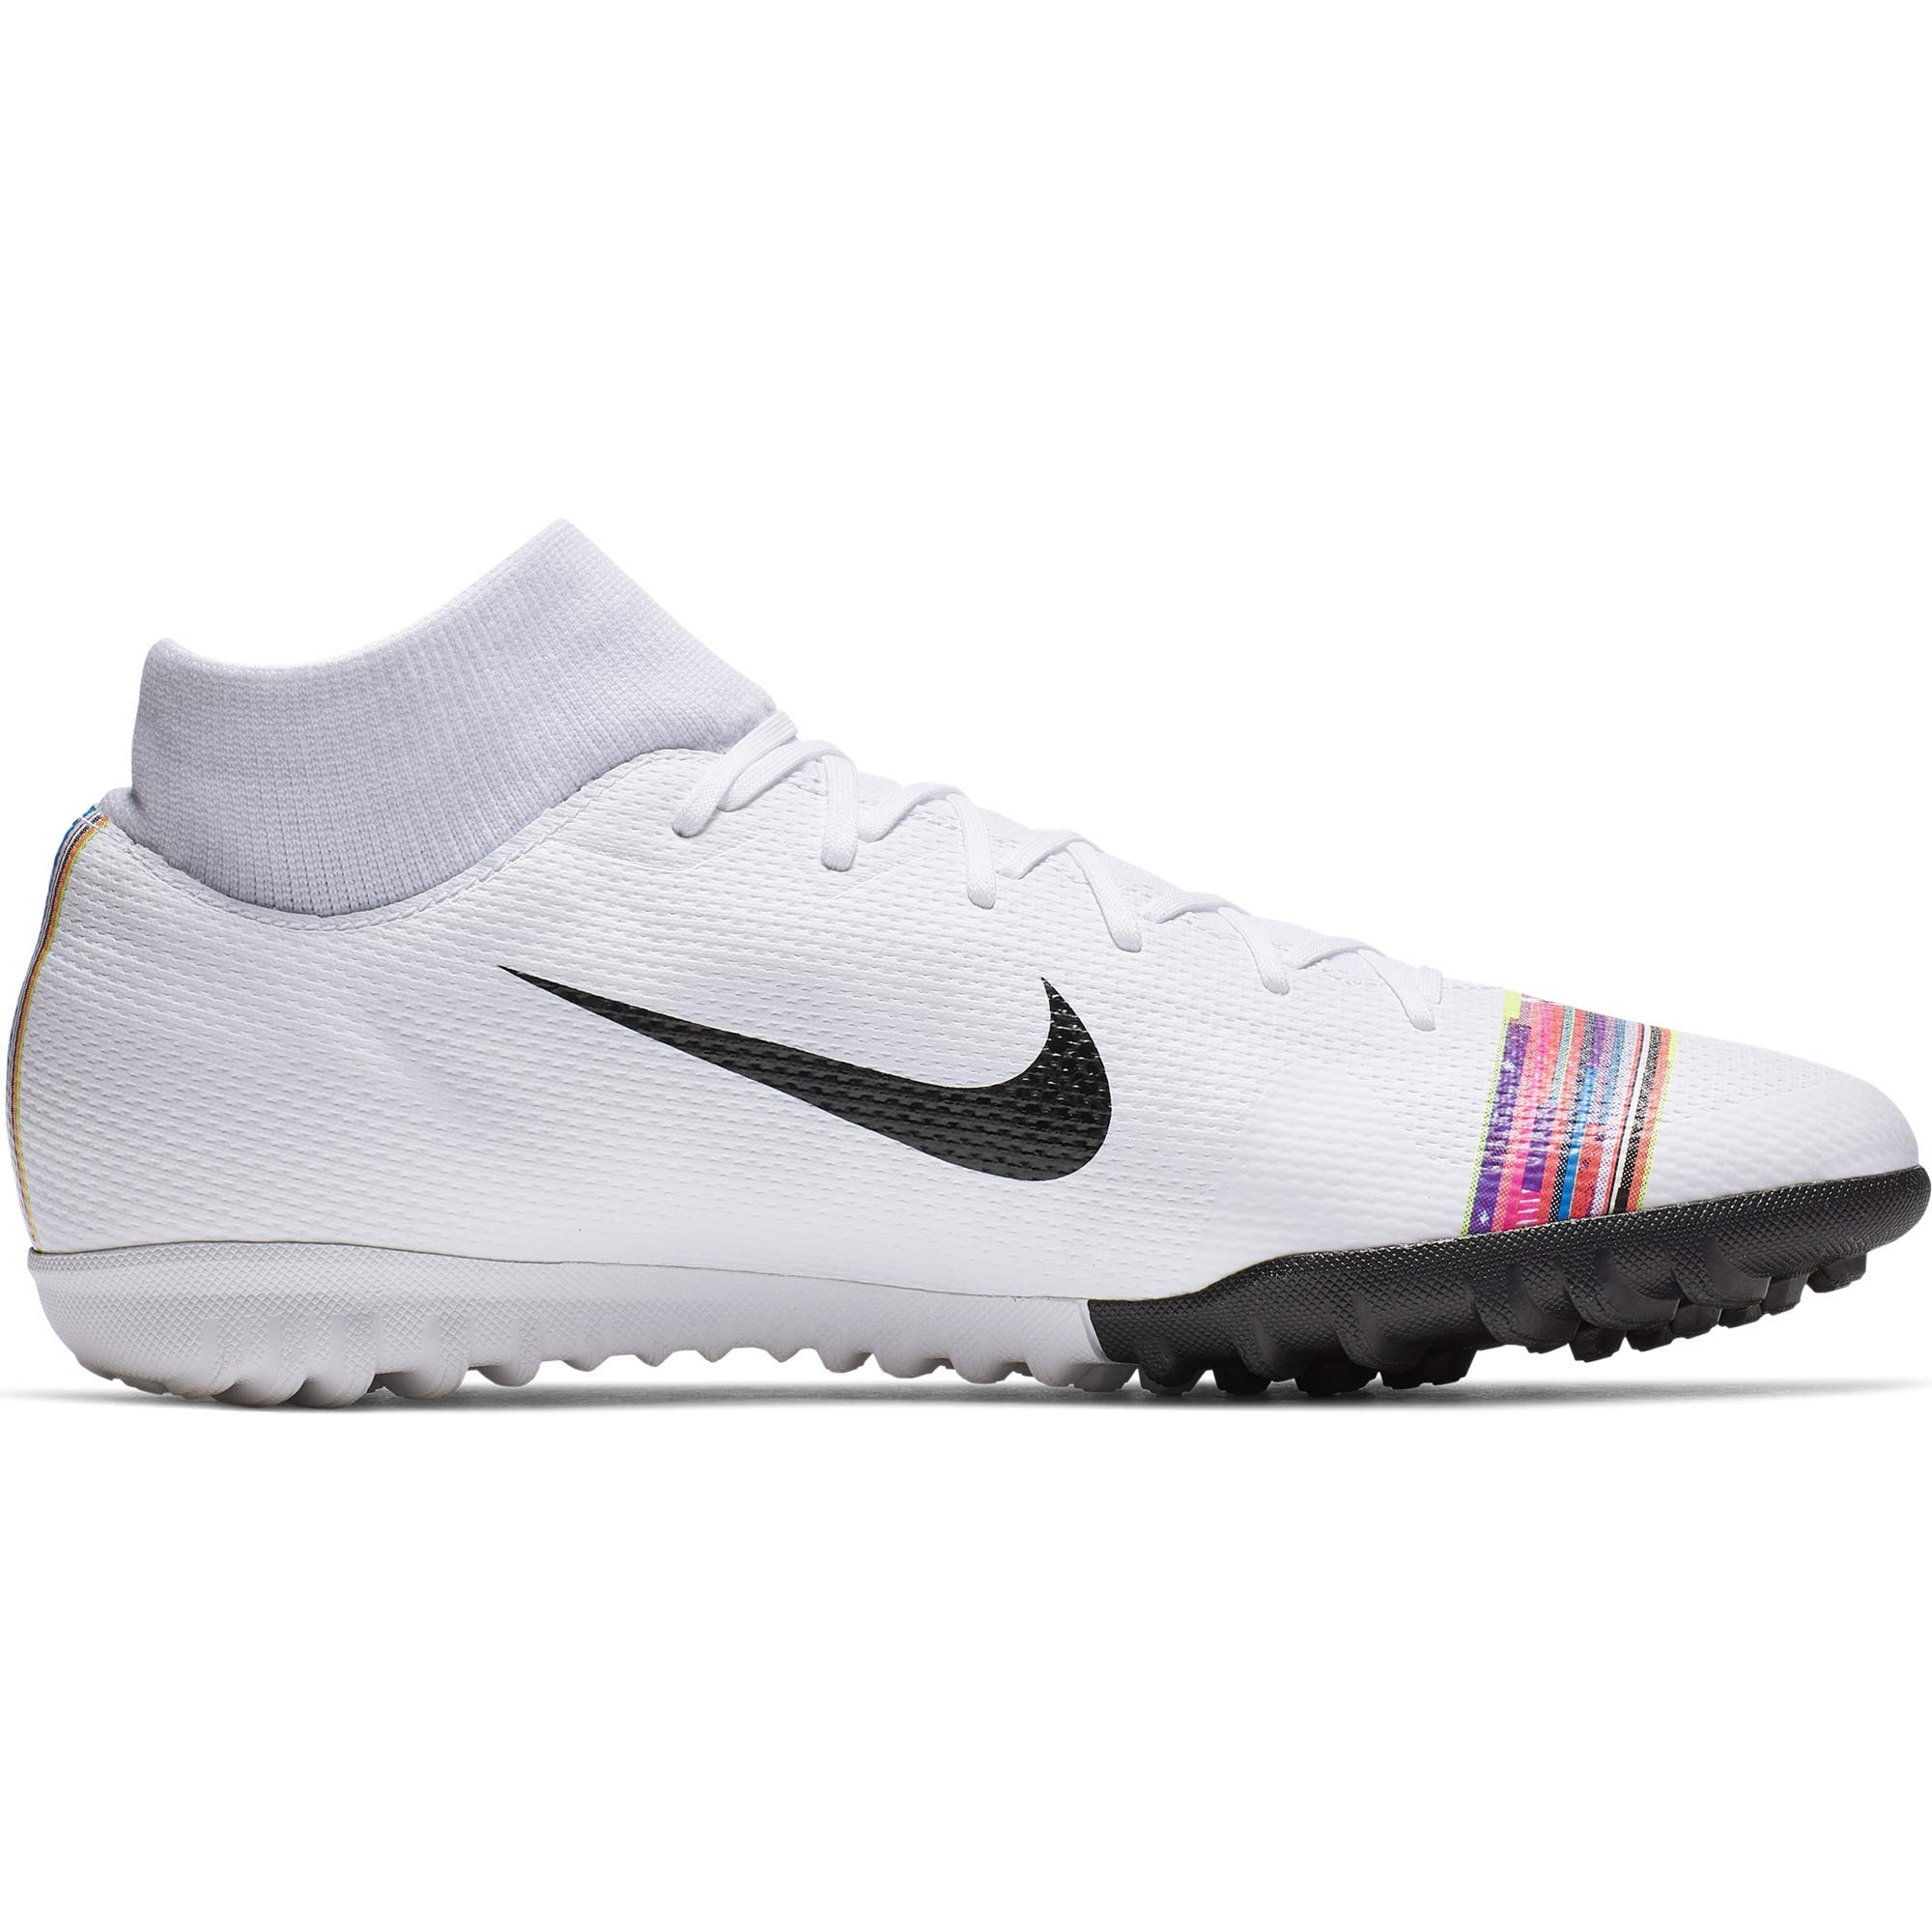 Nike Men's CR7 SuperflyX 6 Academy Turf Soccer Shoe White/Black/Pure Platinum Size 10.5 M US by Nike